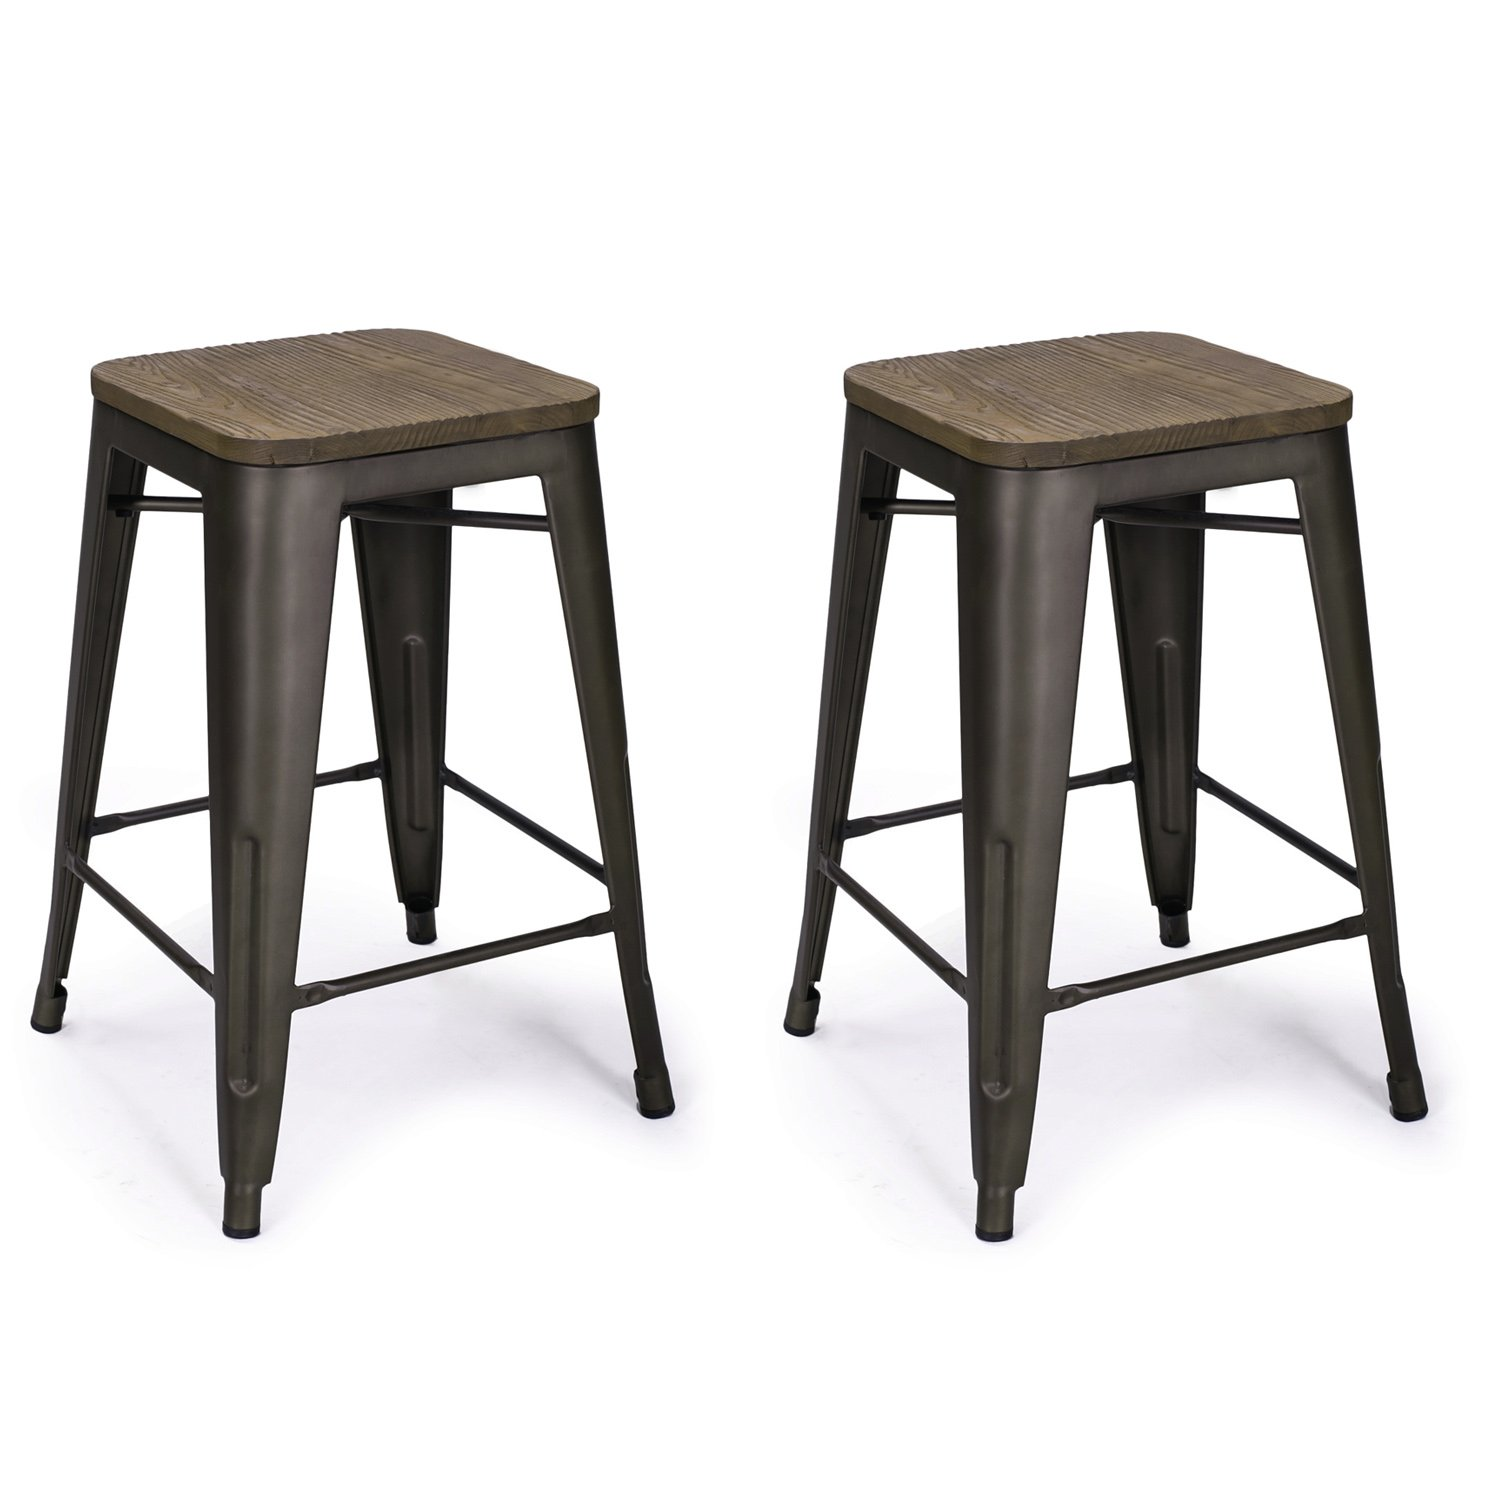 brian k stools outdoor spot stylish stool has awesome subscribed design credited bar stackable winn or furniture from indoor with synthetic fibre target